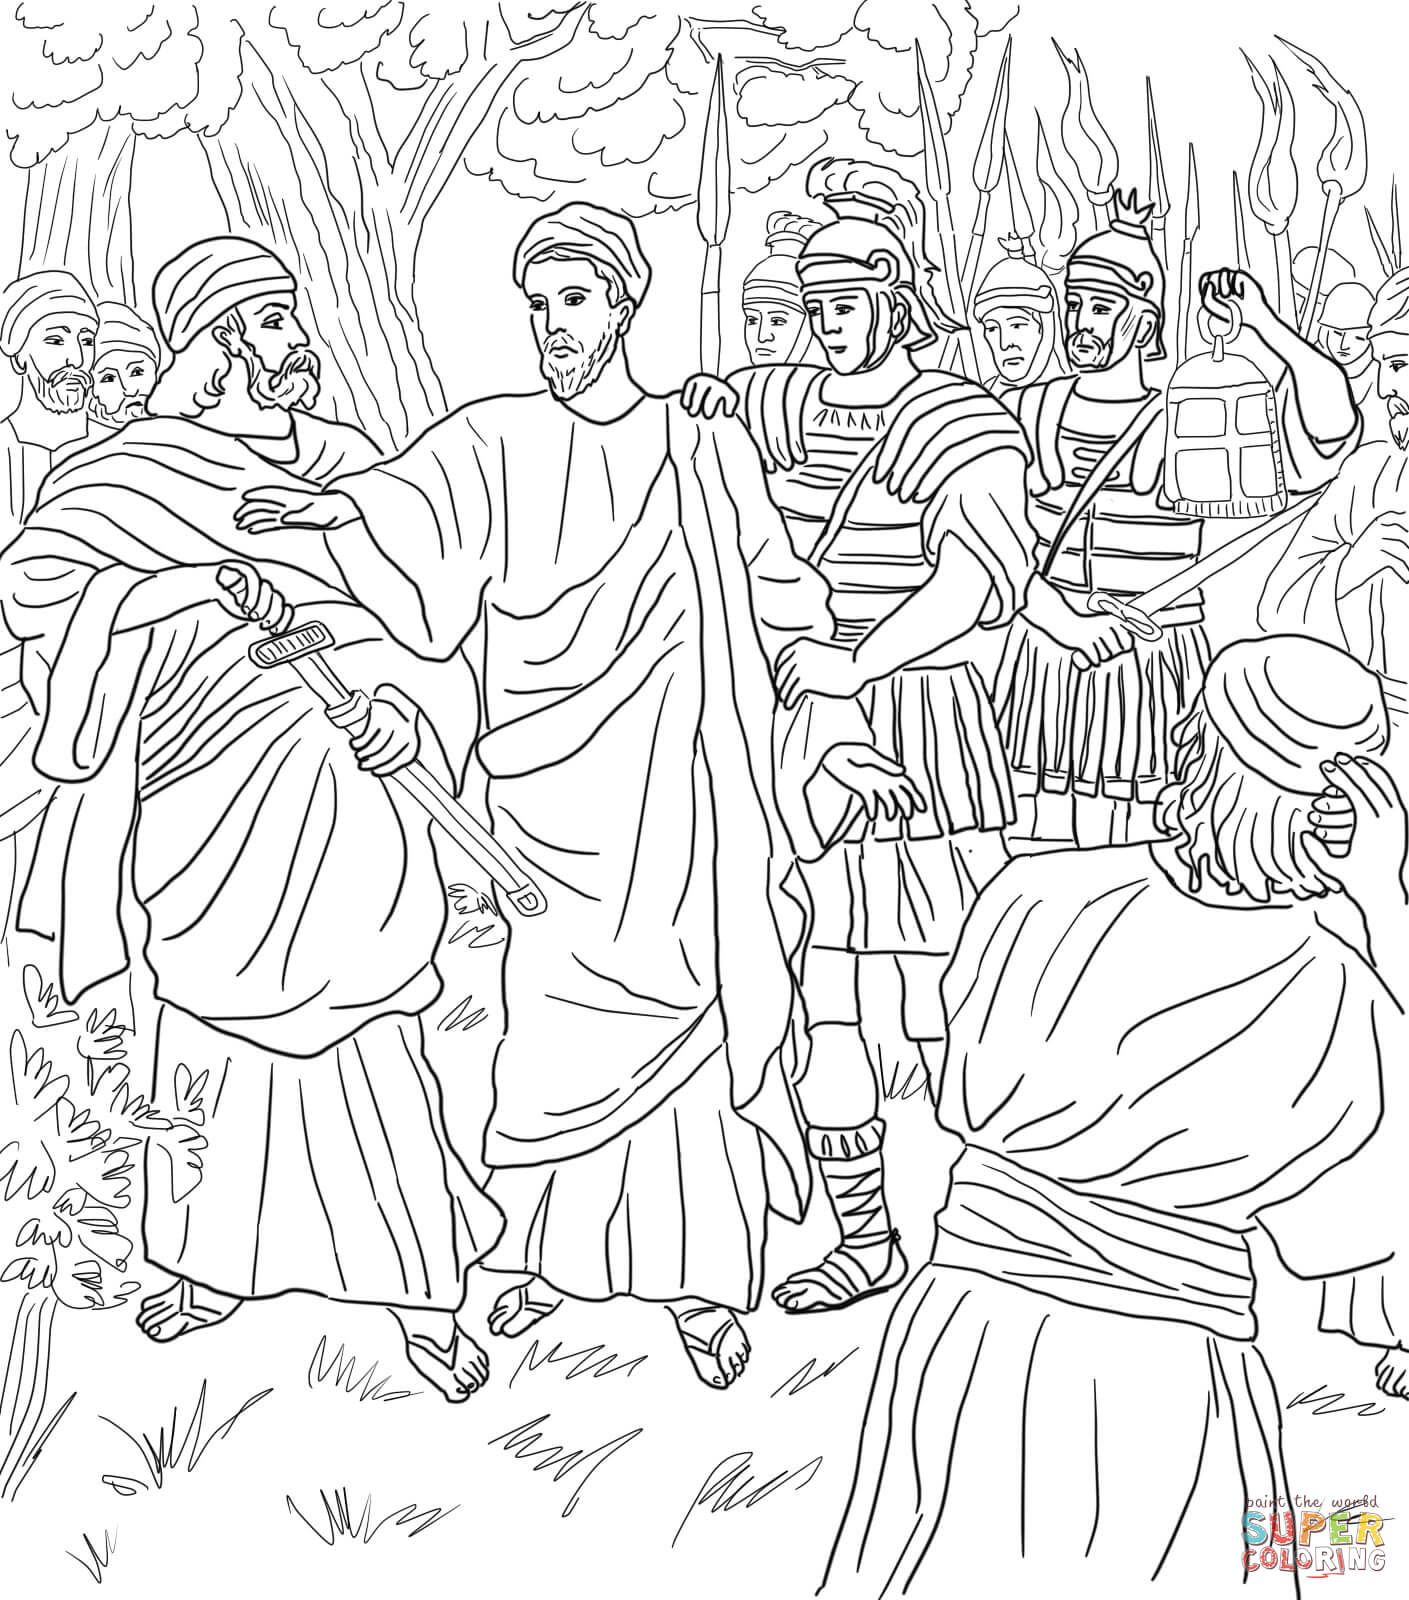 pontius pilate asks the crowd coloring page from good friday category select from 28283 printable crafts of cartoons nature animals bible and many more - Coloring Page Garden Of Gethsemane